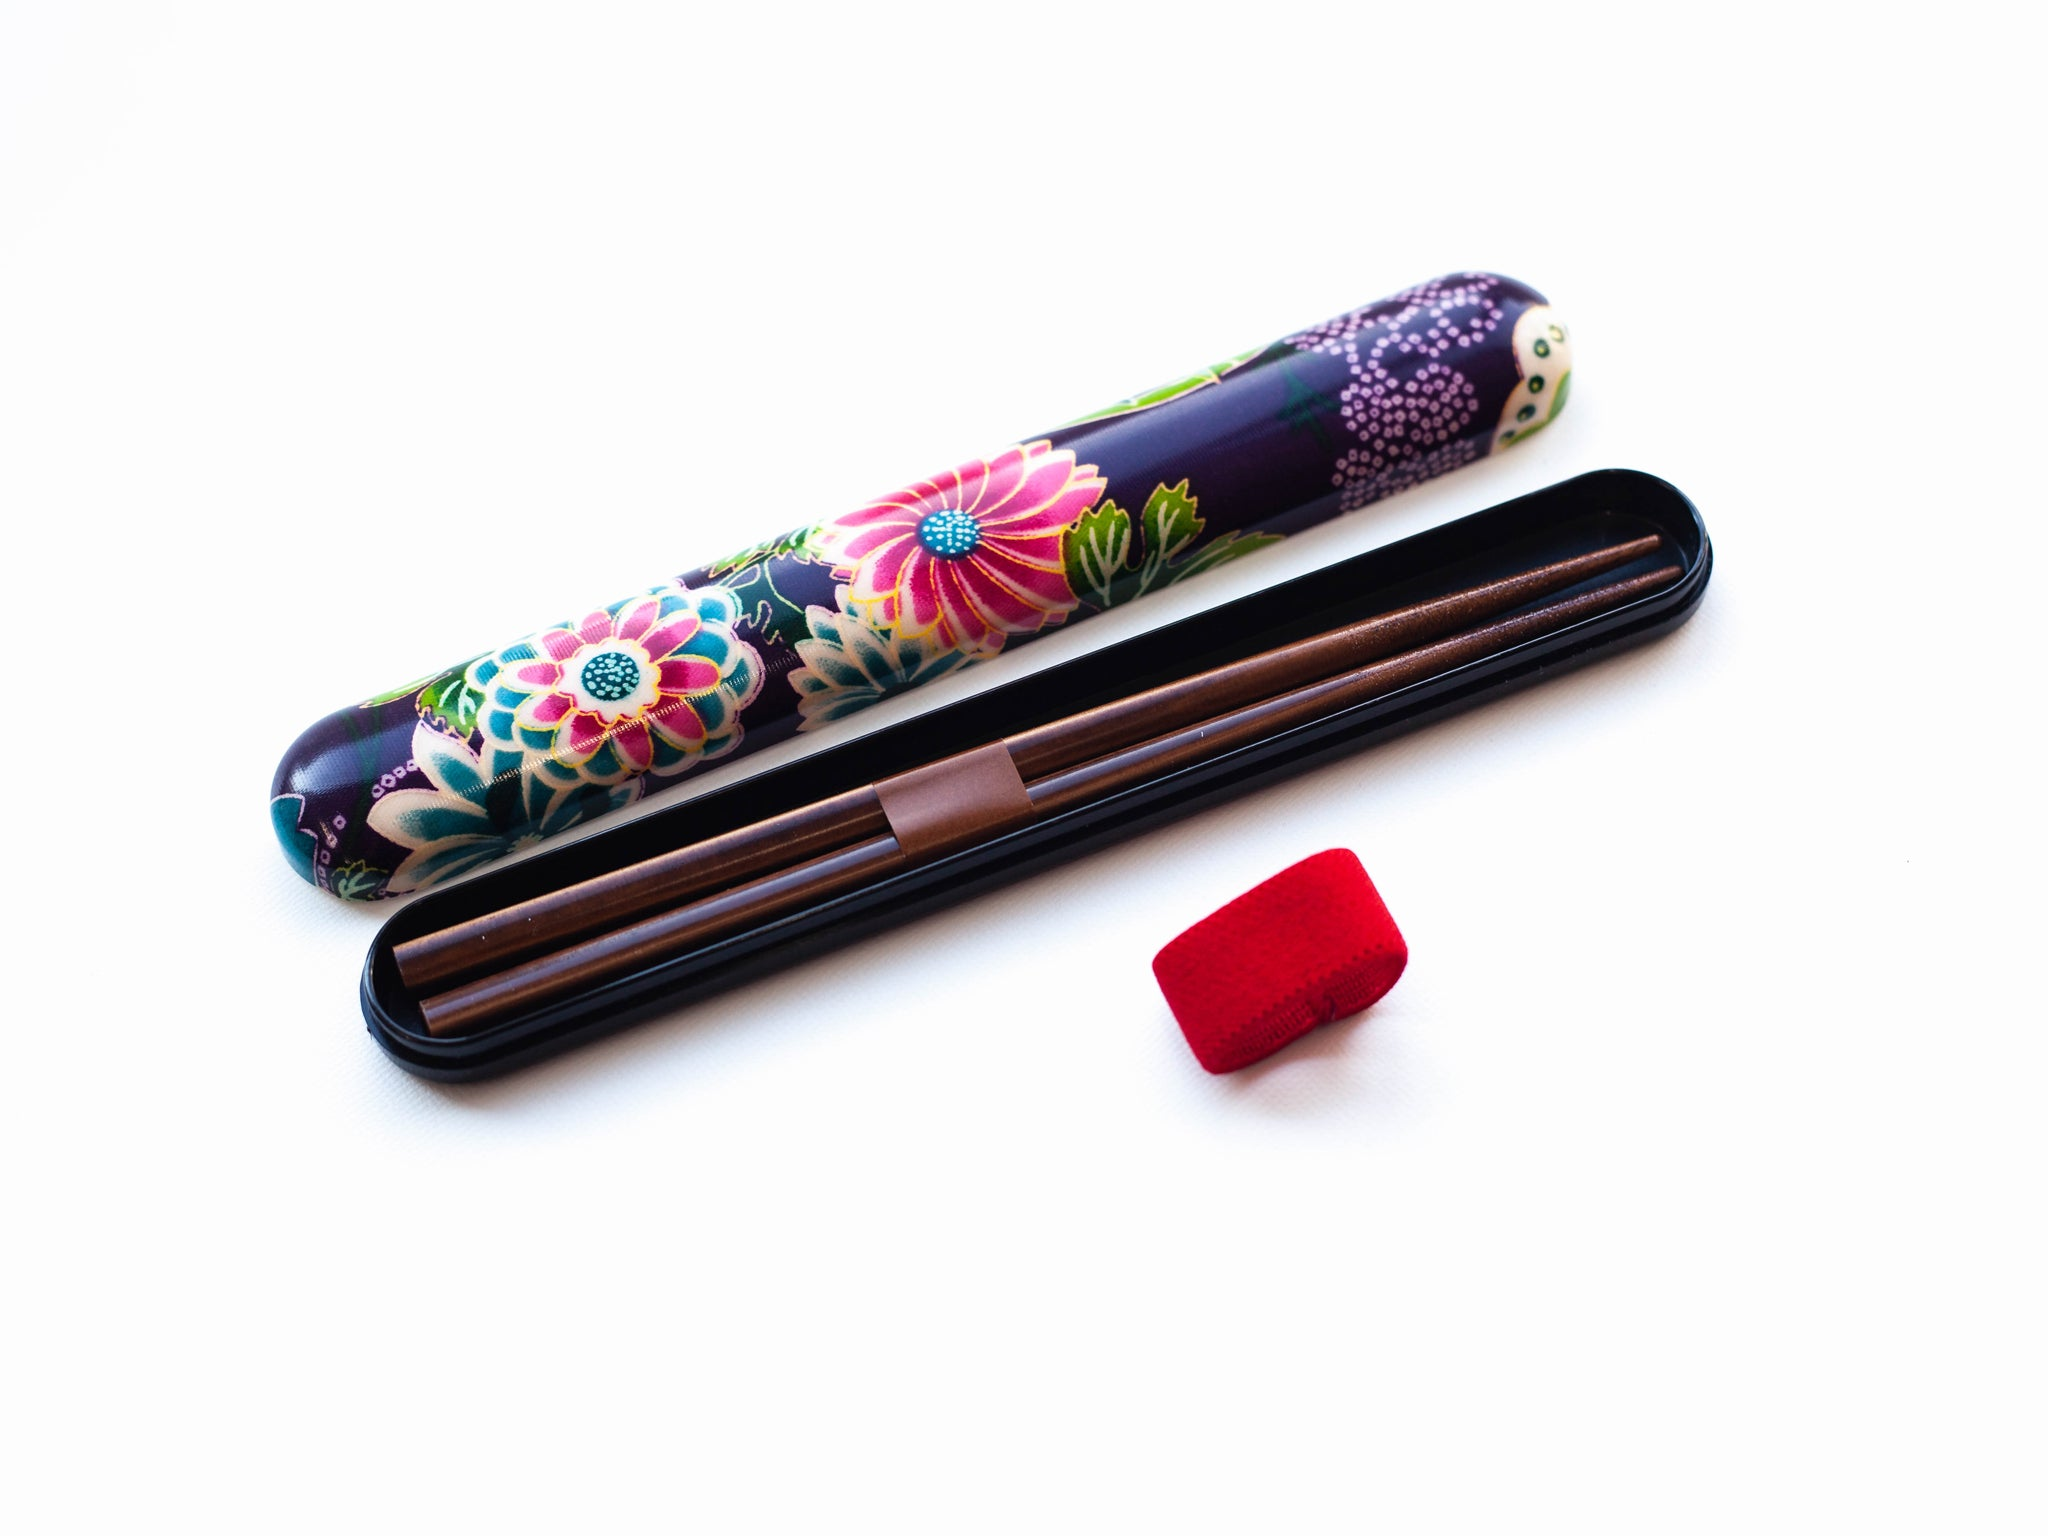 Kimono Chopsticks Set | Murasaki by Bento&co - Bento&co Japanese Bento Lunch Boxes and Kitchenware Specialists